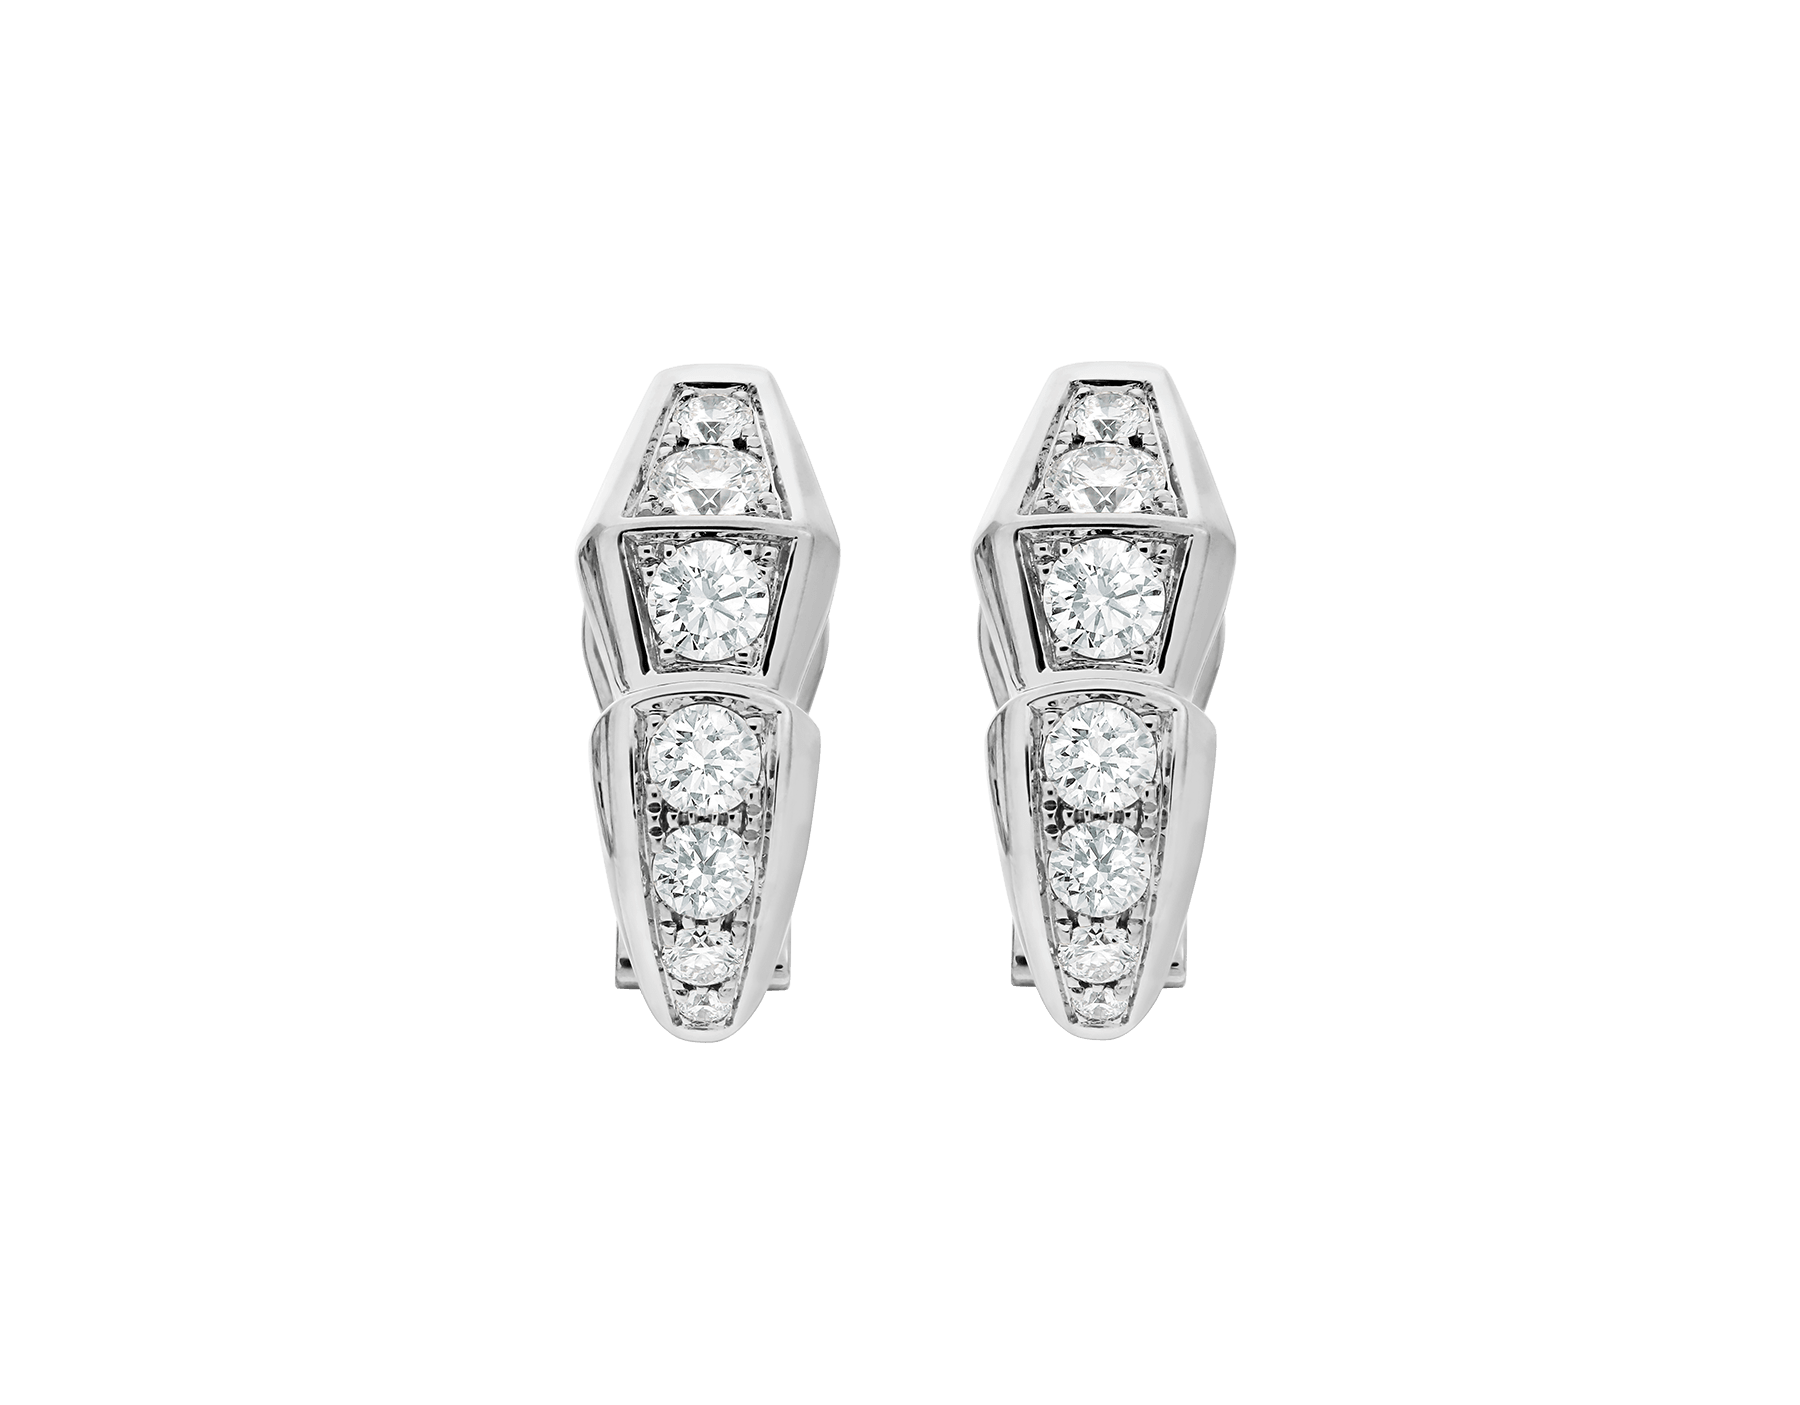 Serpenti Viper slim earrings in 18 kt white gold, set with full pavé diamonds. 351426 image 1